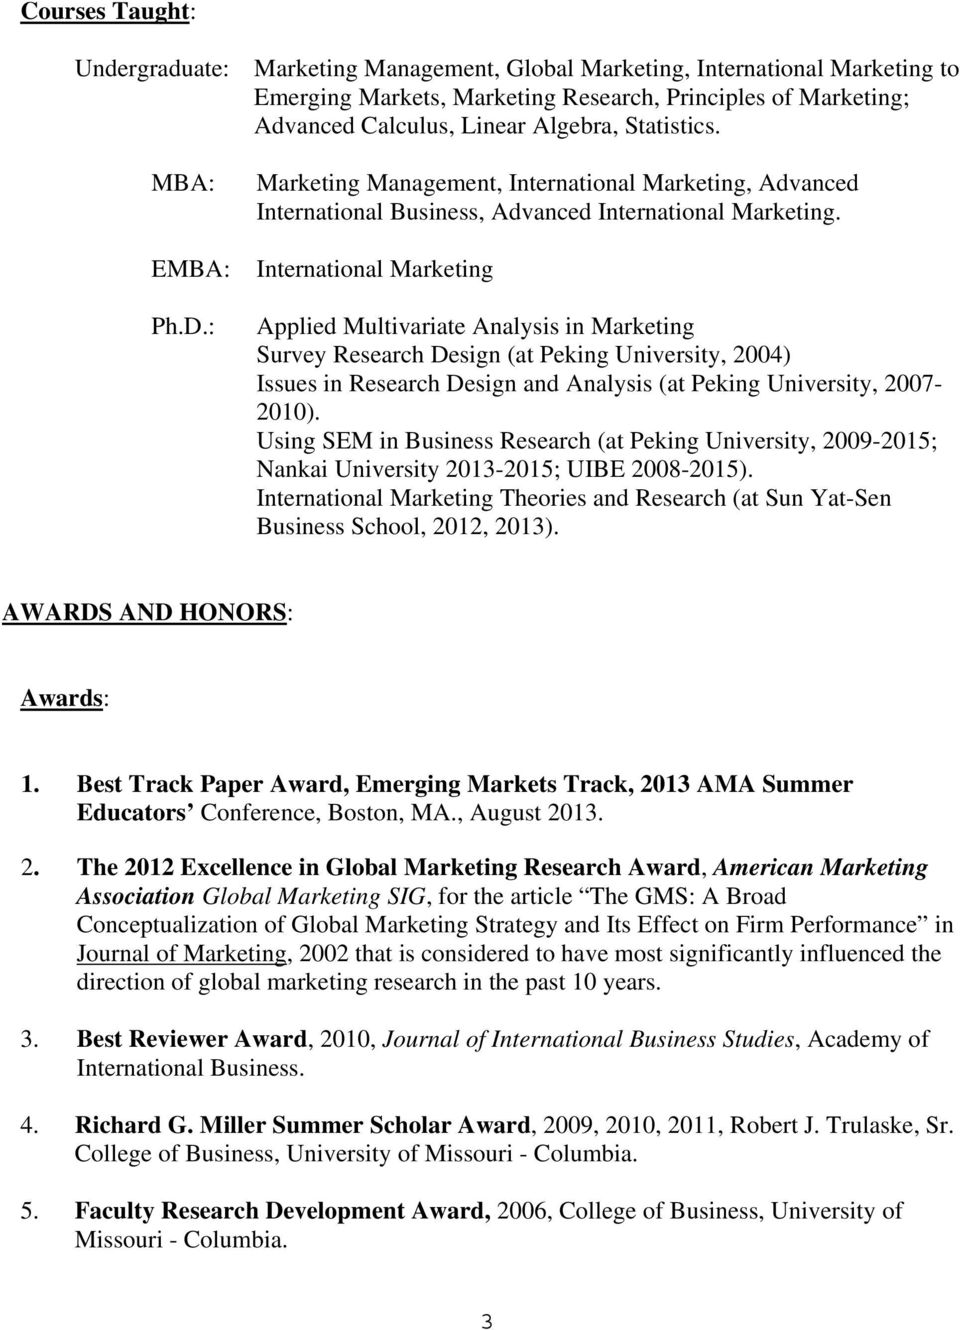 International Marketing Applied Multivariate Analysis in Marketing Survey Research Design (at Peking University, 2004) Issues in Research Design and Analysis (at Peking University, 2007-2010).